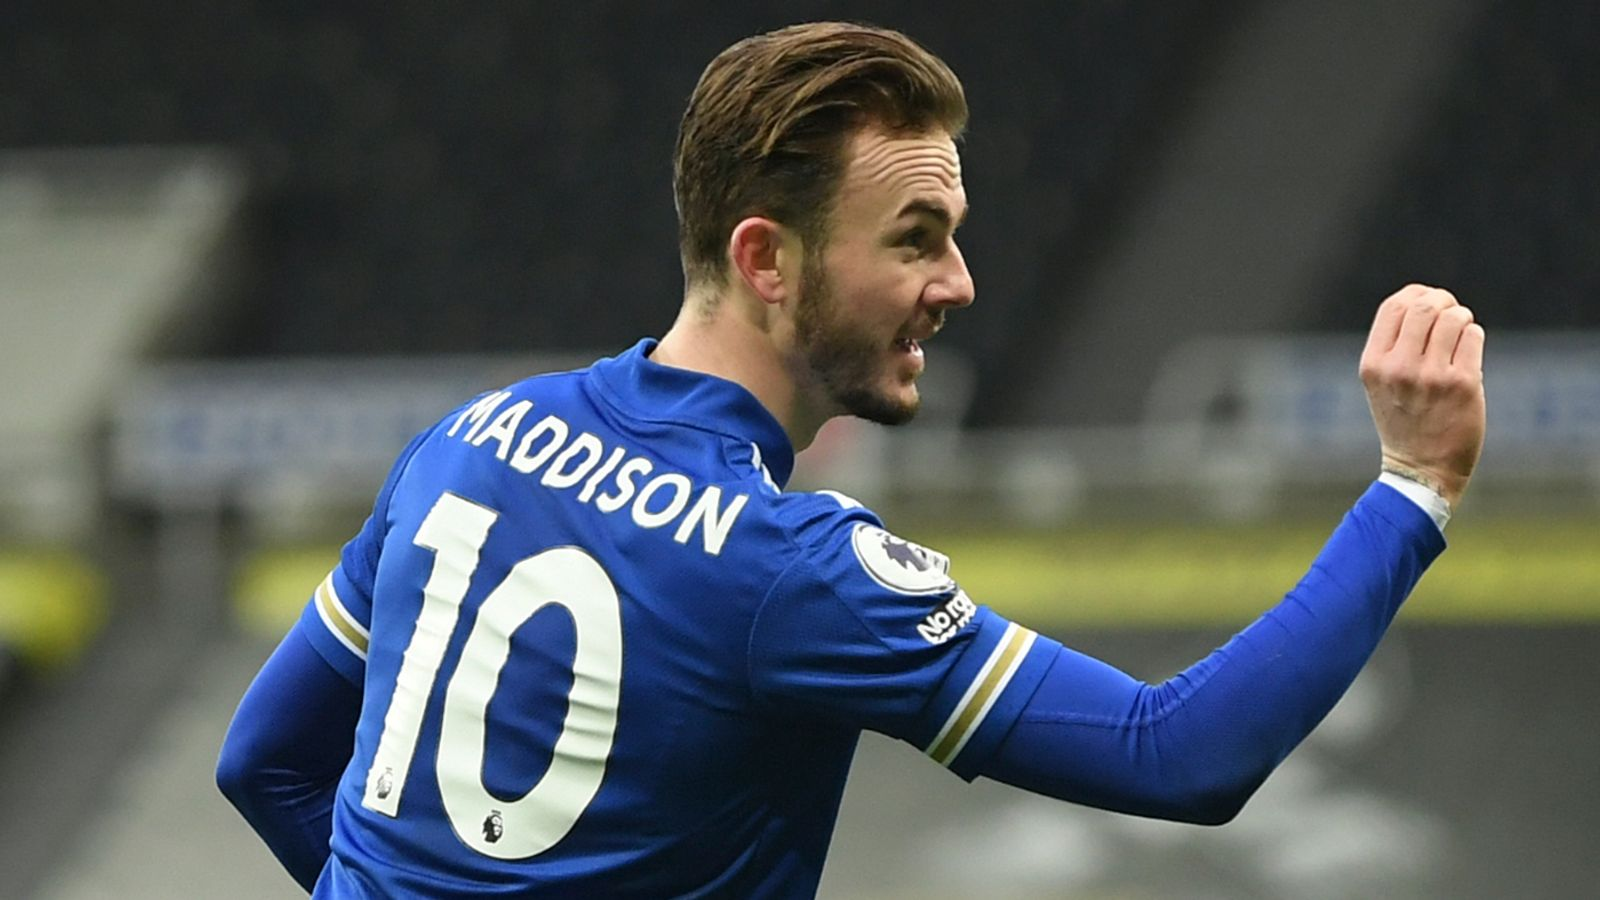 James Maddison: Leicester City midfielder returns to squad for Manchester  City game | Football News | Sky Sports